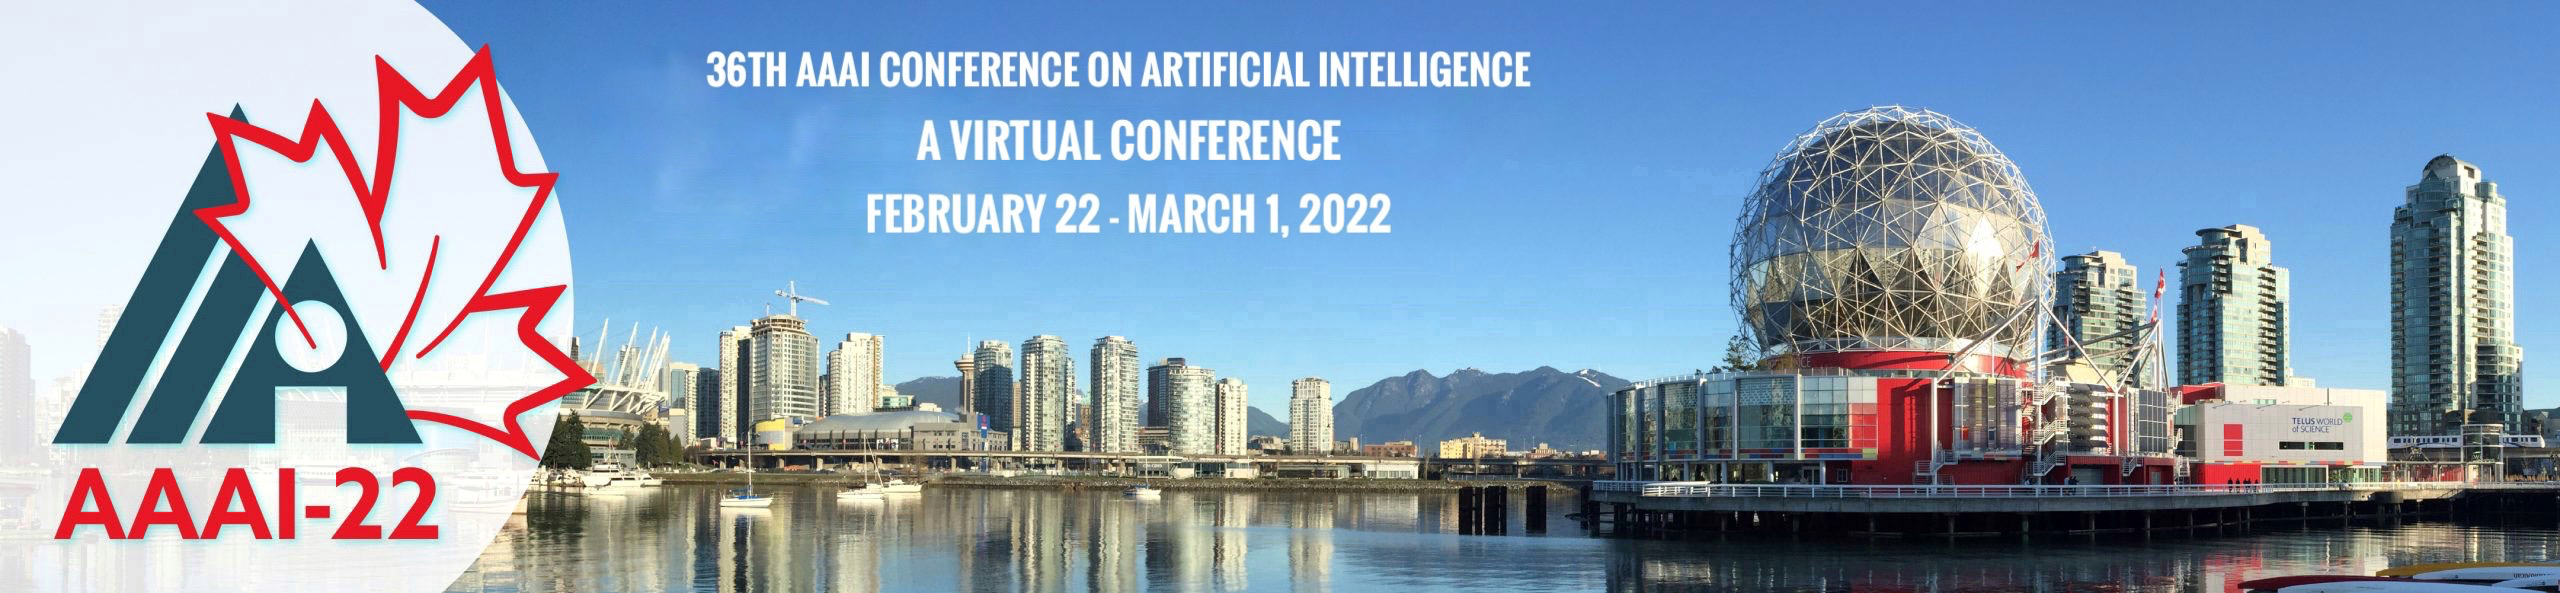 The Thirty-Sixth AAAI Conference on Artificial Intelligence (AAAI-22)